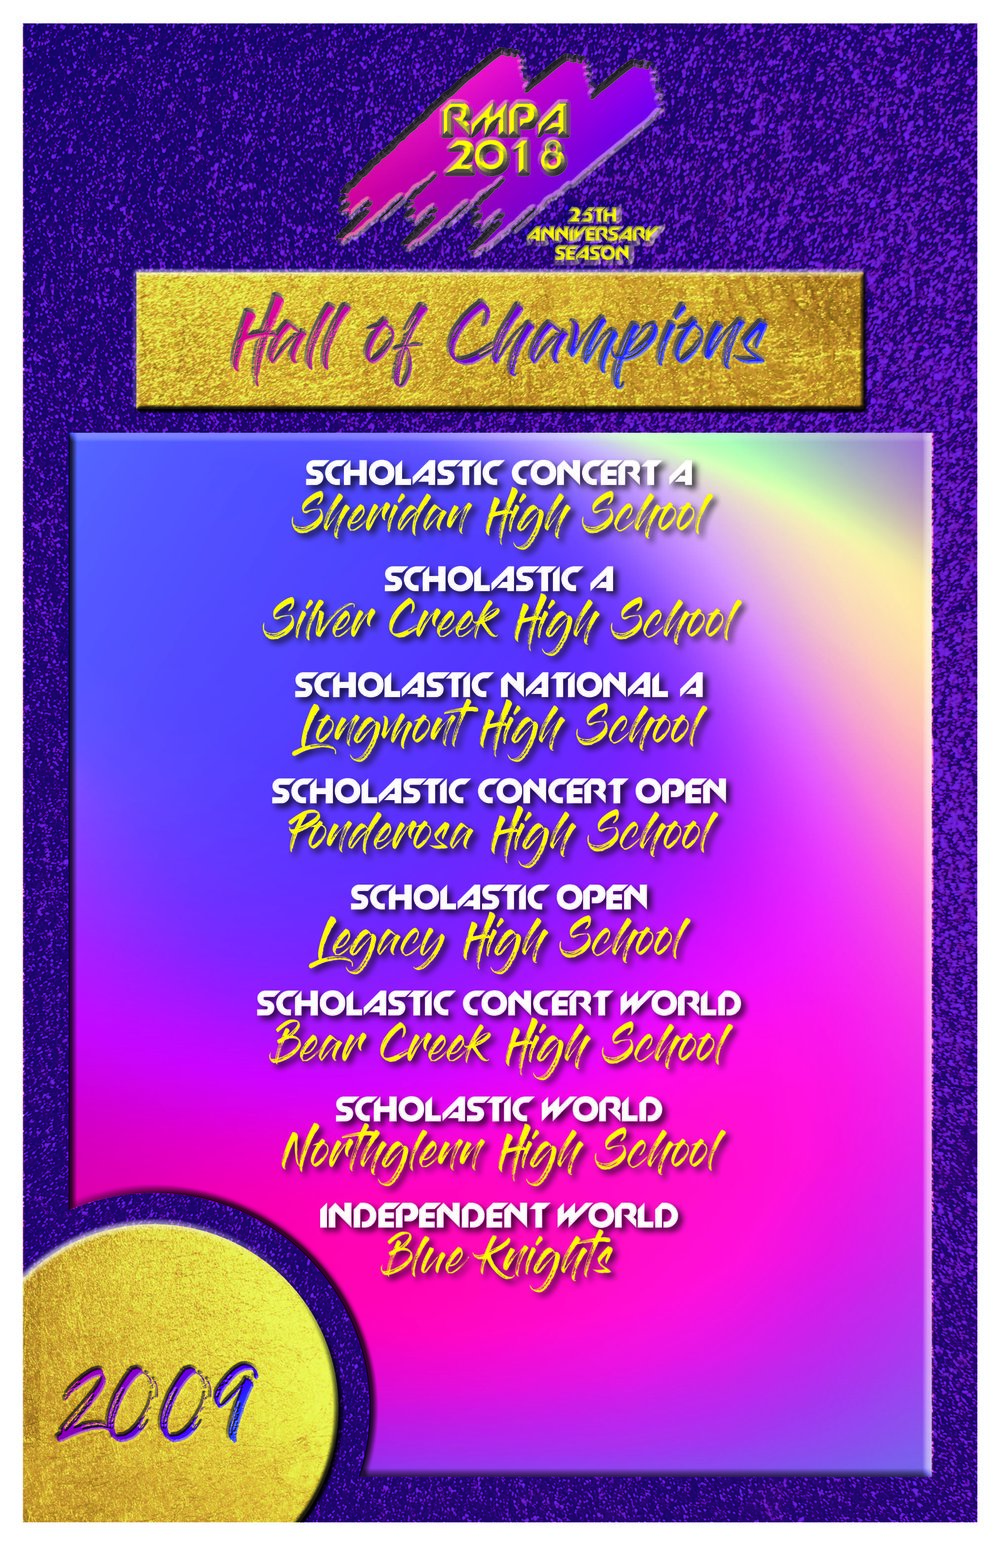 Hall of Champions Posters_Page_17.jpg